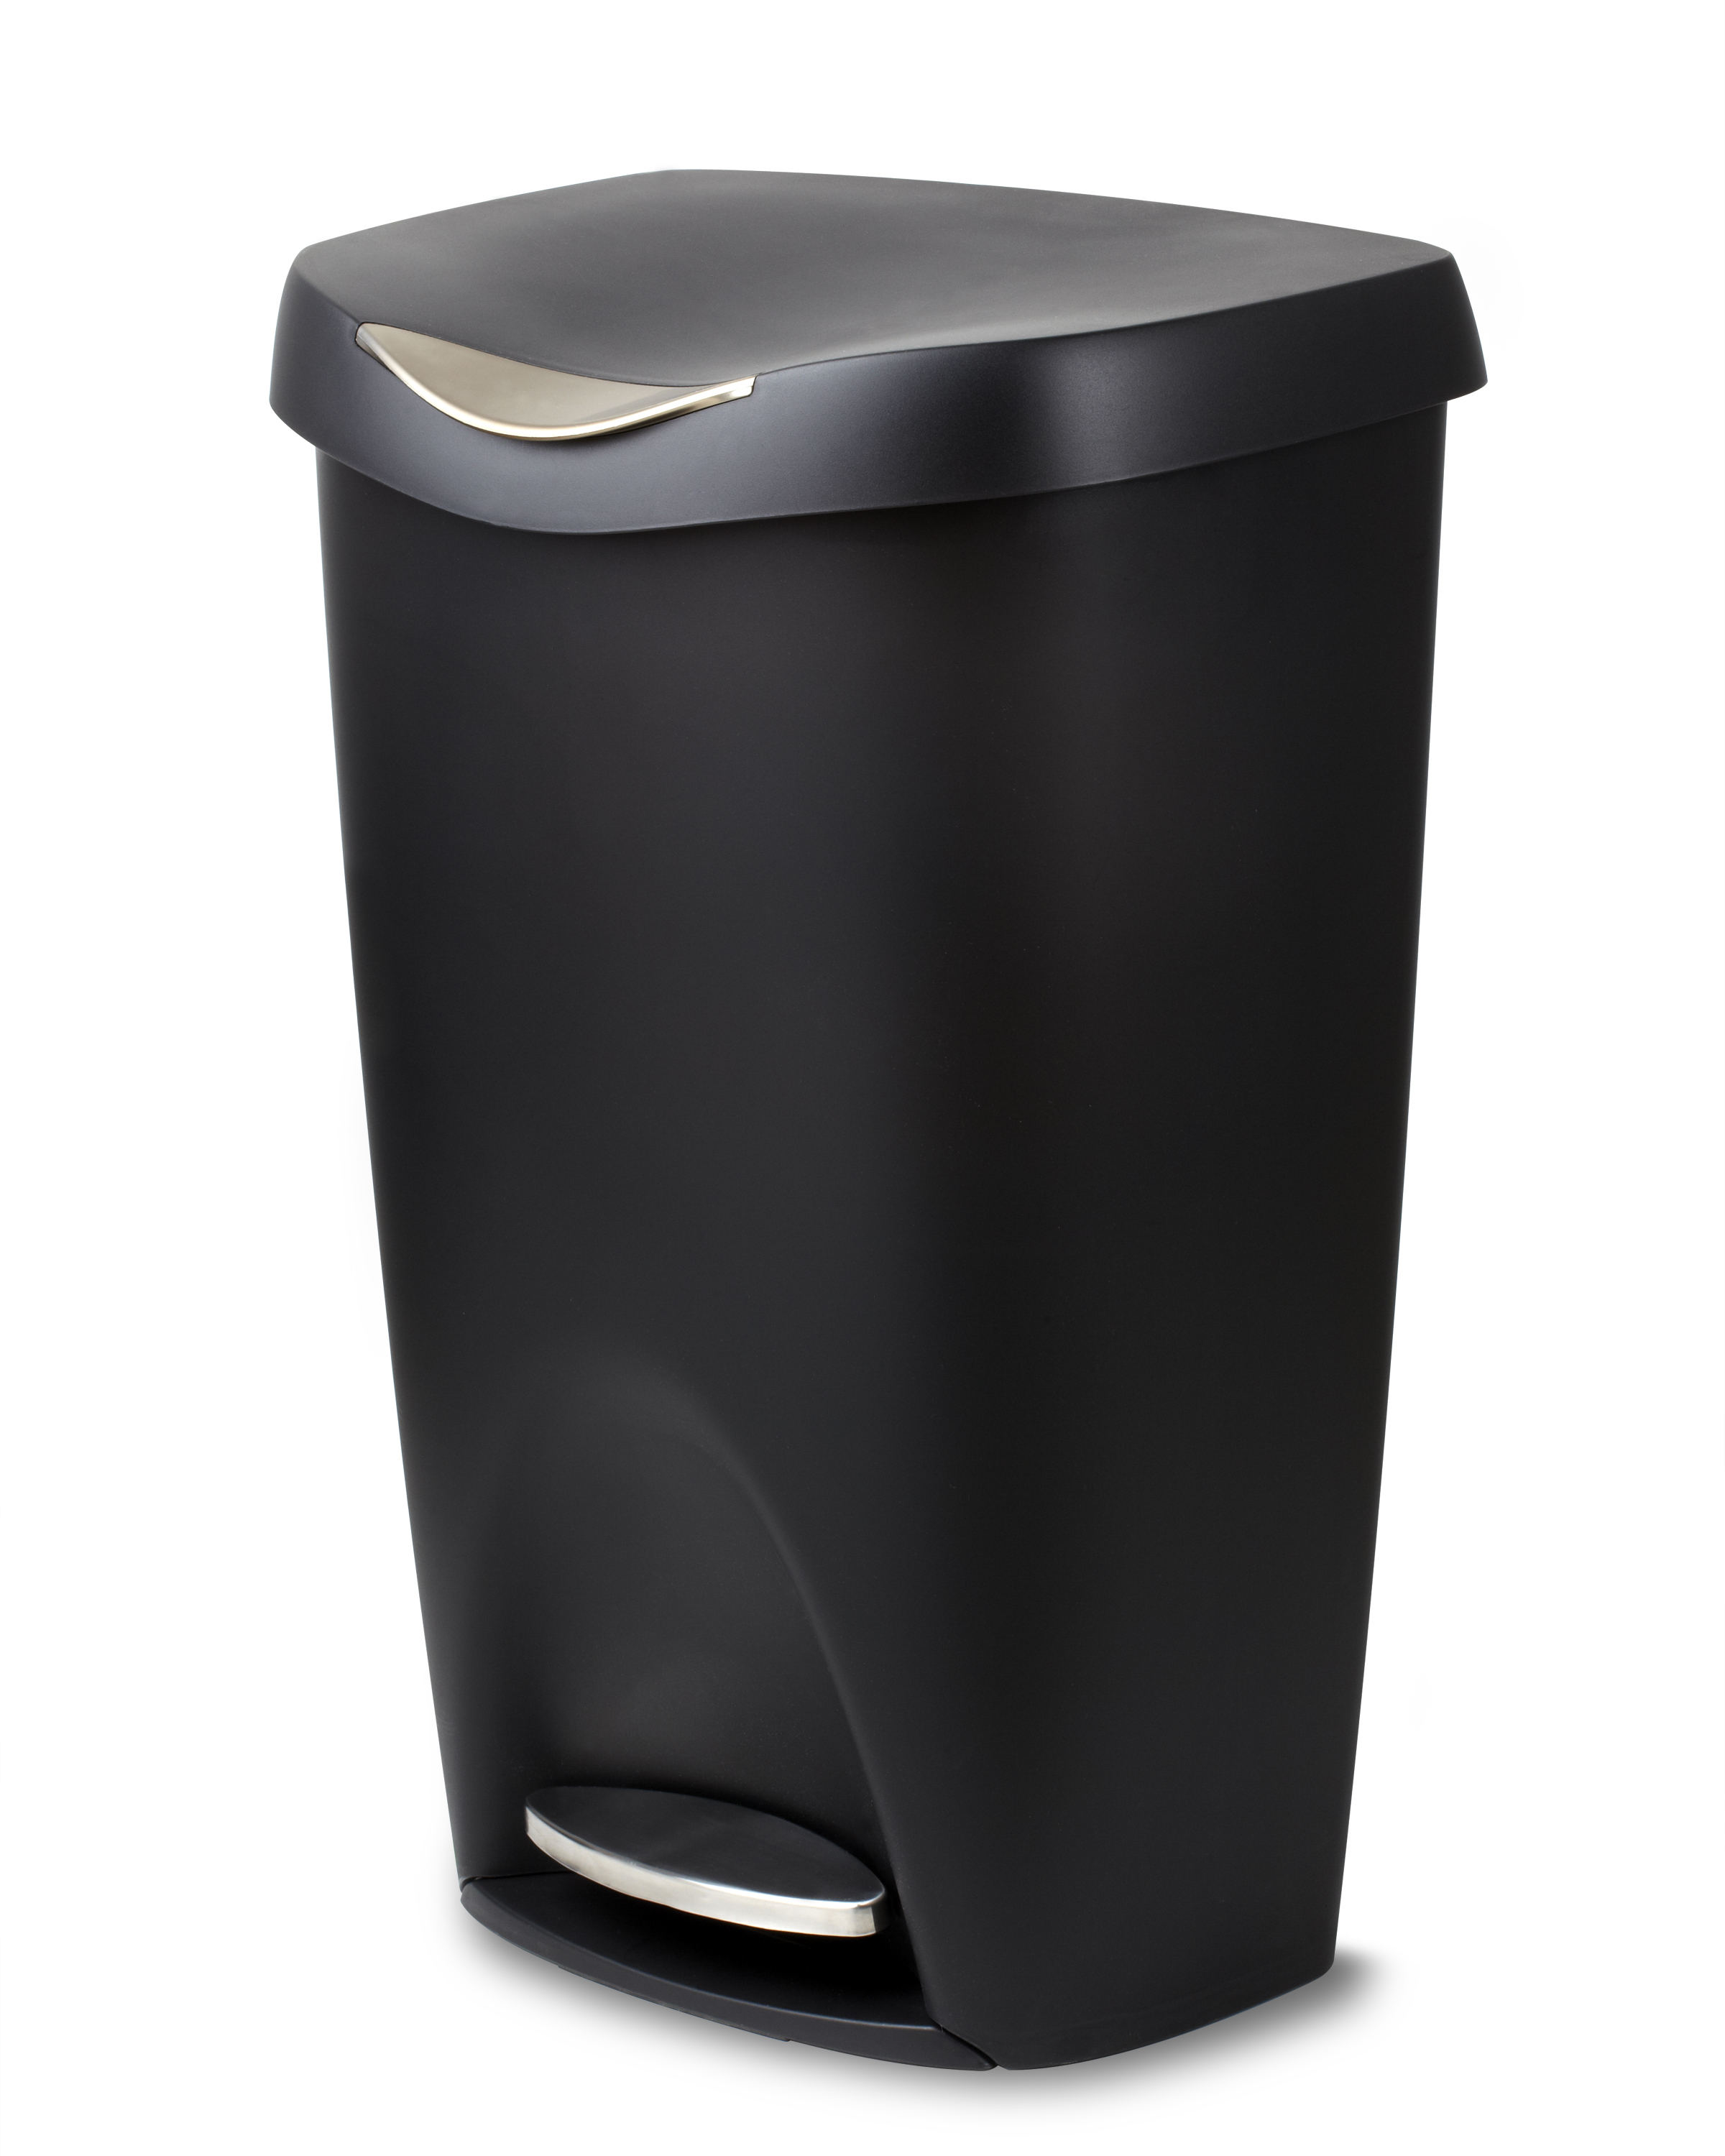 stainless steel kitchen trash can. Umbra Brim Large Kitchen Trash Can With Stainless Steel Foot Pedal \u2013 Stylish And Durable 13 H